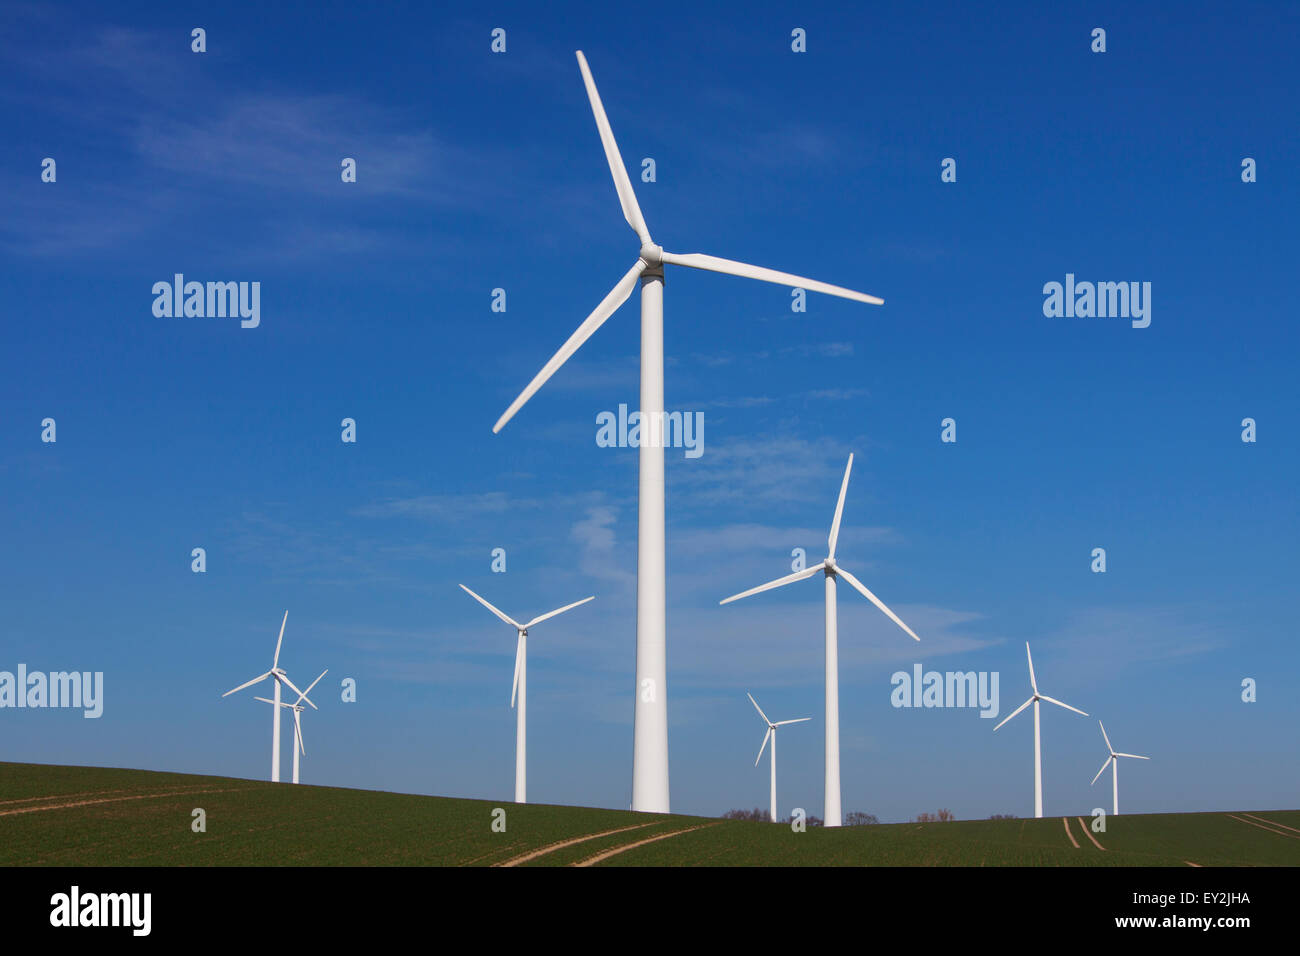 Wind turbines at windfarm in field against blue sky - Stock Image